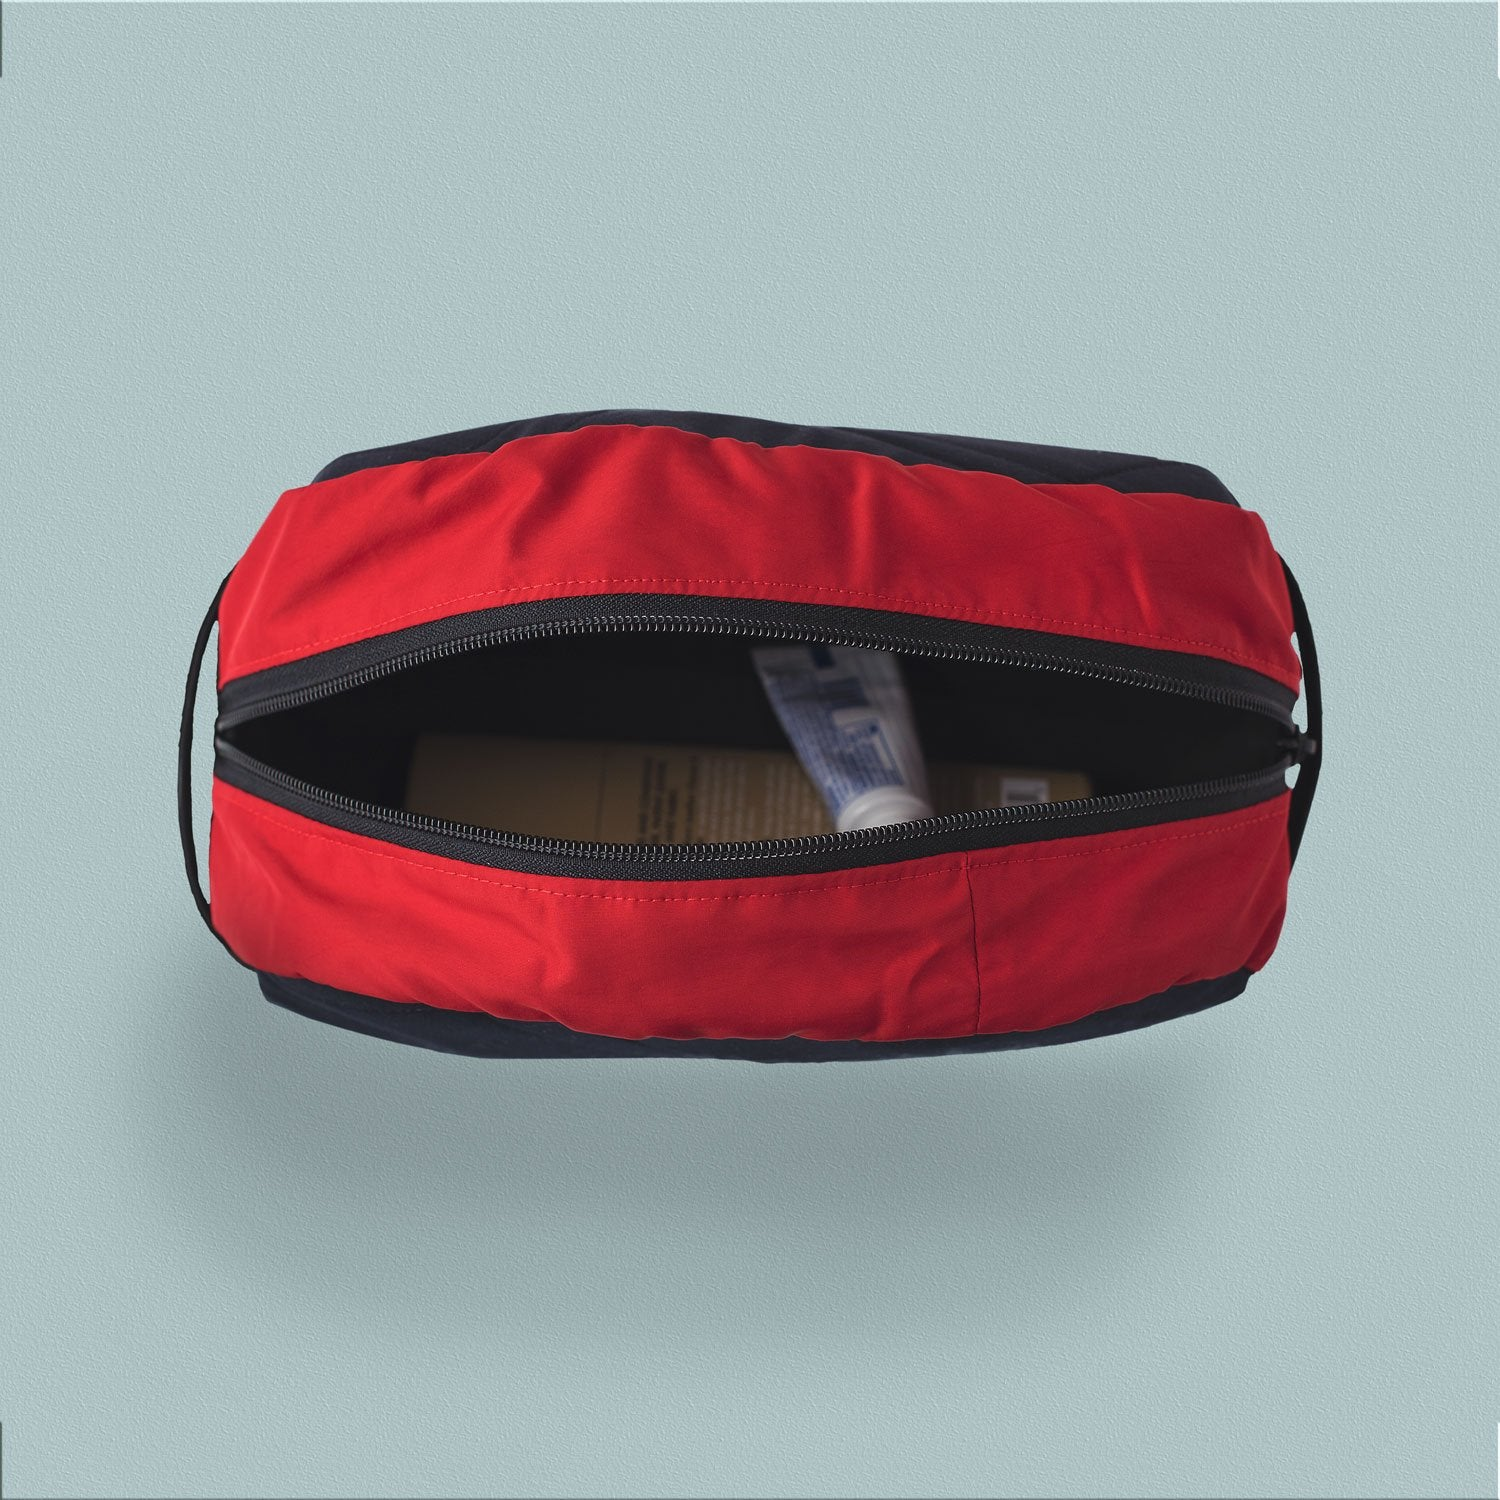 Delta Toiletry Bag Accessories - Looptworks